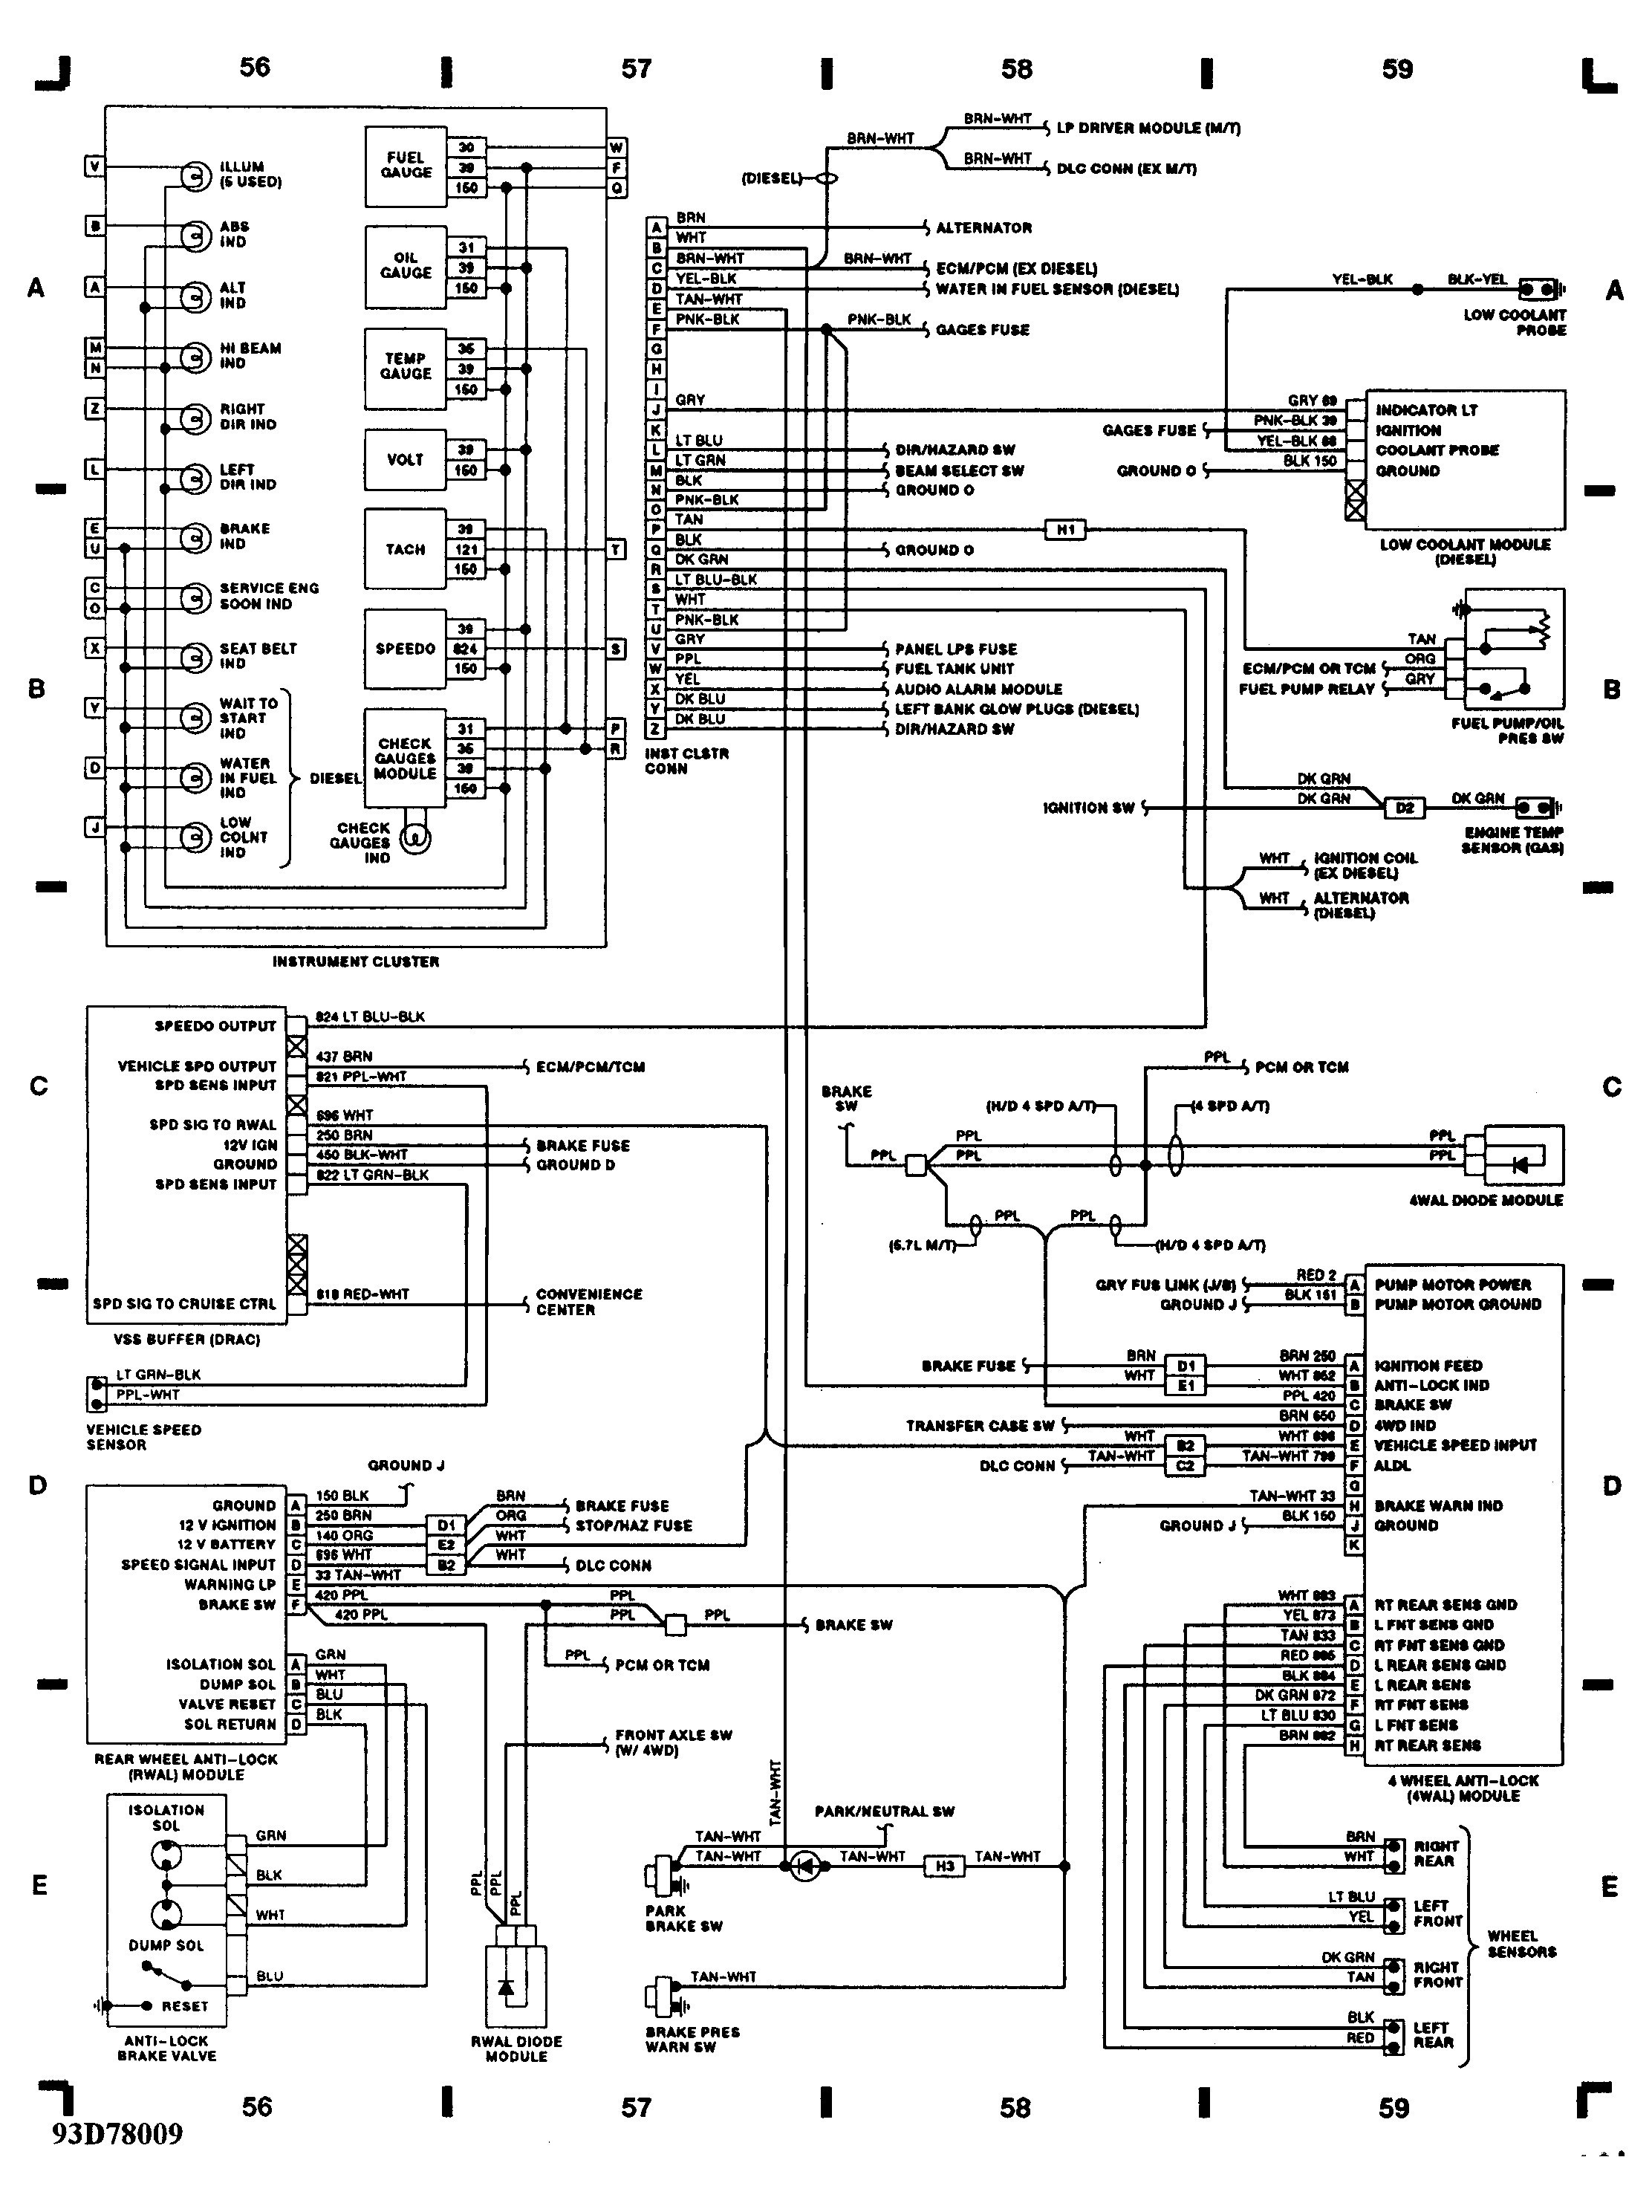 1993 Chey S 10 Headlight Wiring Diagram Diagram] 2006 Chevy 3500 Wiring Diagram Full Version Hd Of 1993 Chey S 10 Headlight Wiring Diagram